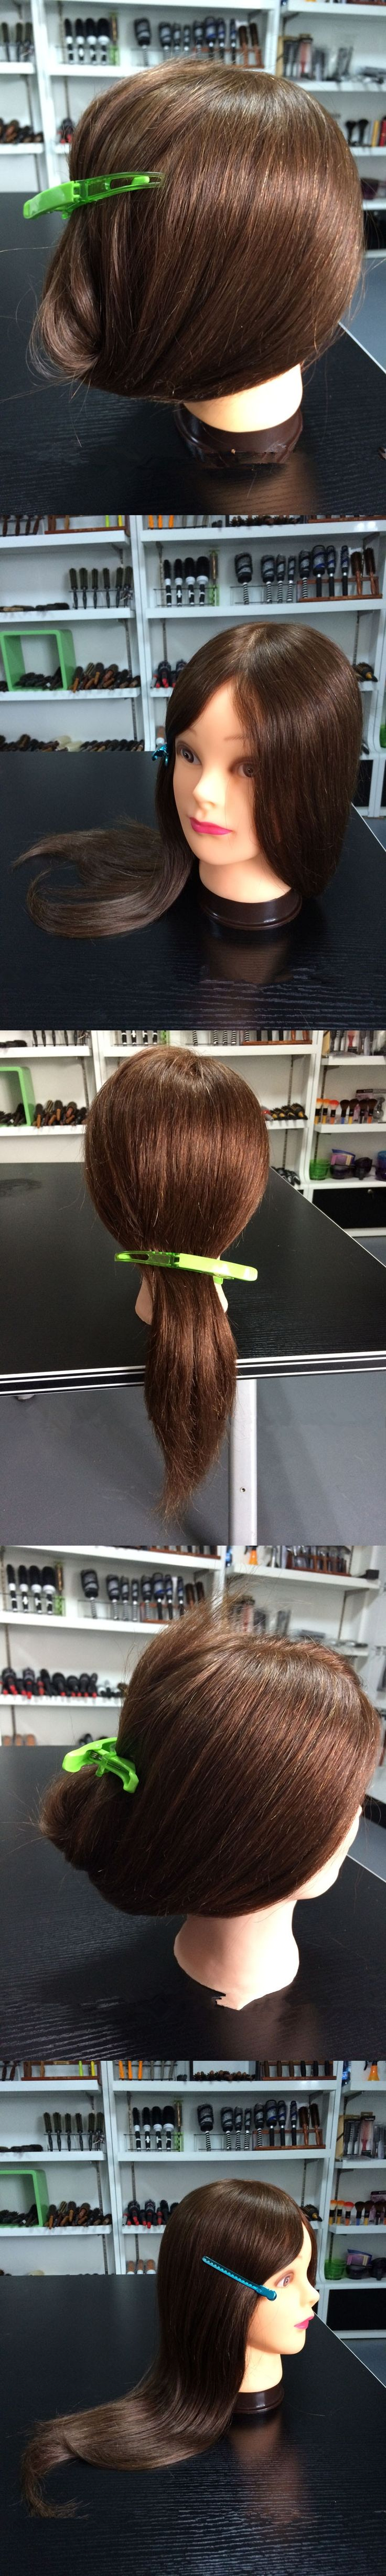 1PC 90% Real Human Hair Hairdressing Training Head With Clamp Salon Mannequin Head For Hair Styling Tools